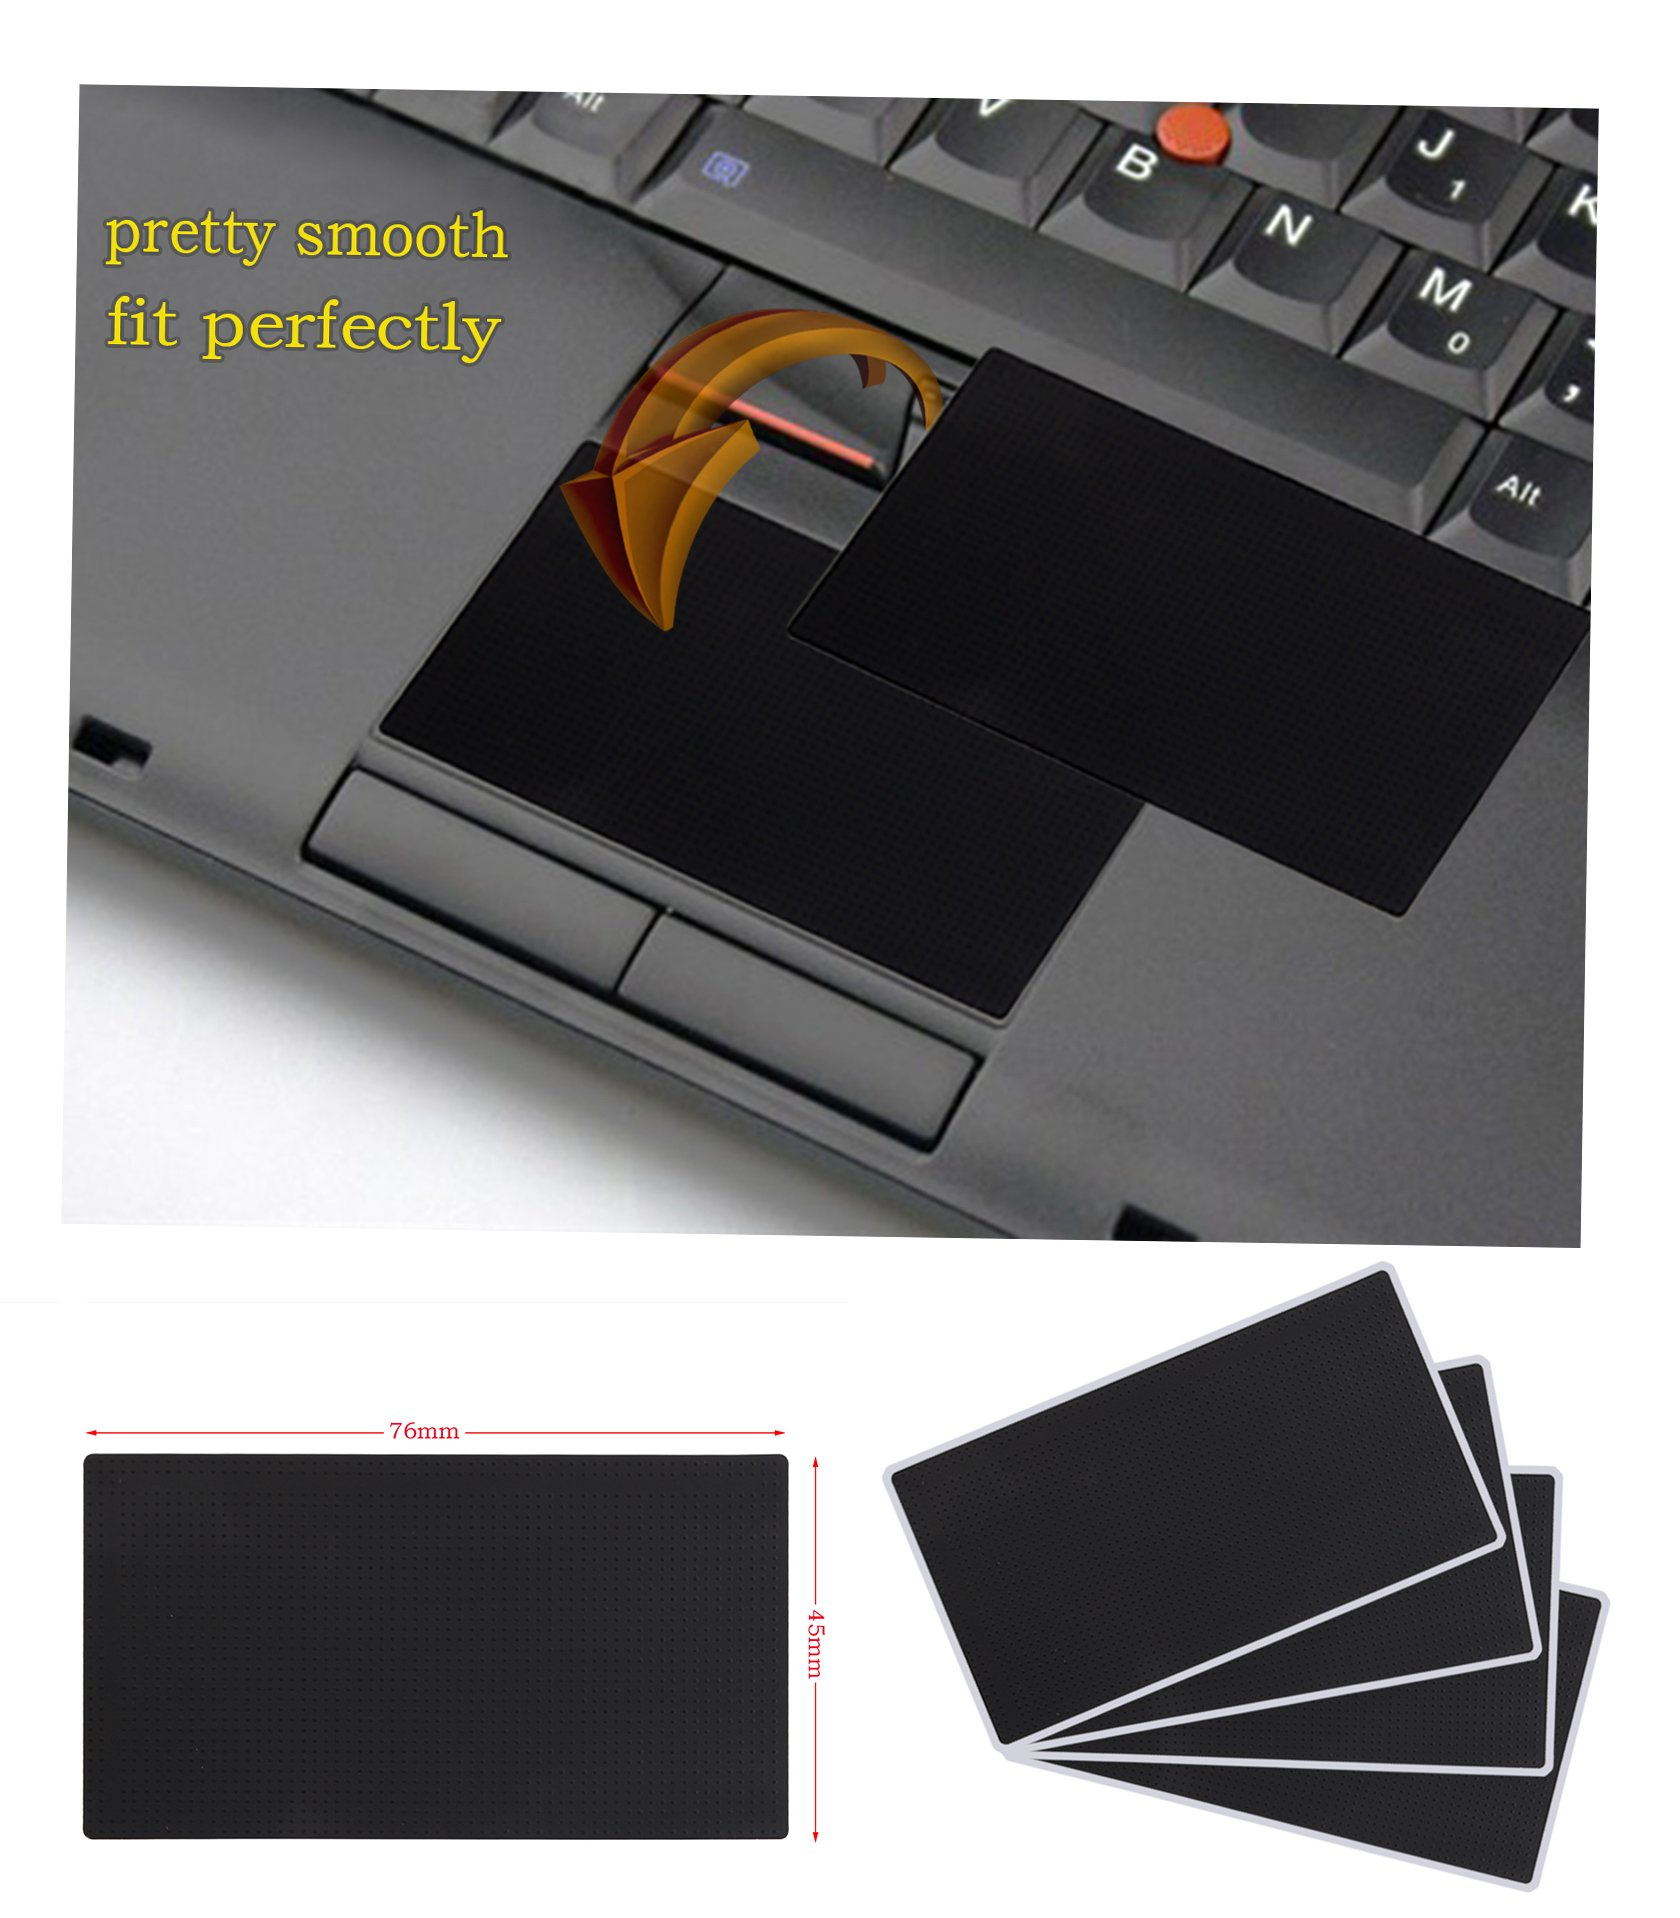 Asunflower Genuine Smooth Touchpad Sticker for Lenovo IBM Thinkpad T410 T410i T410s T400s T420 T420i T420s T430 T430s T430i T510 T510i W510 W520 (Pack of 4)